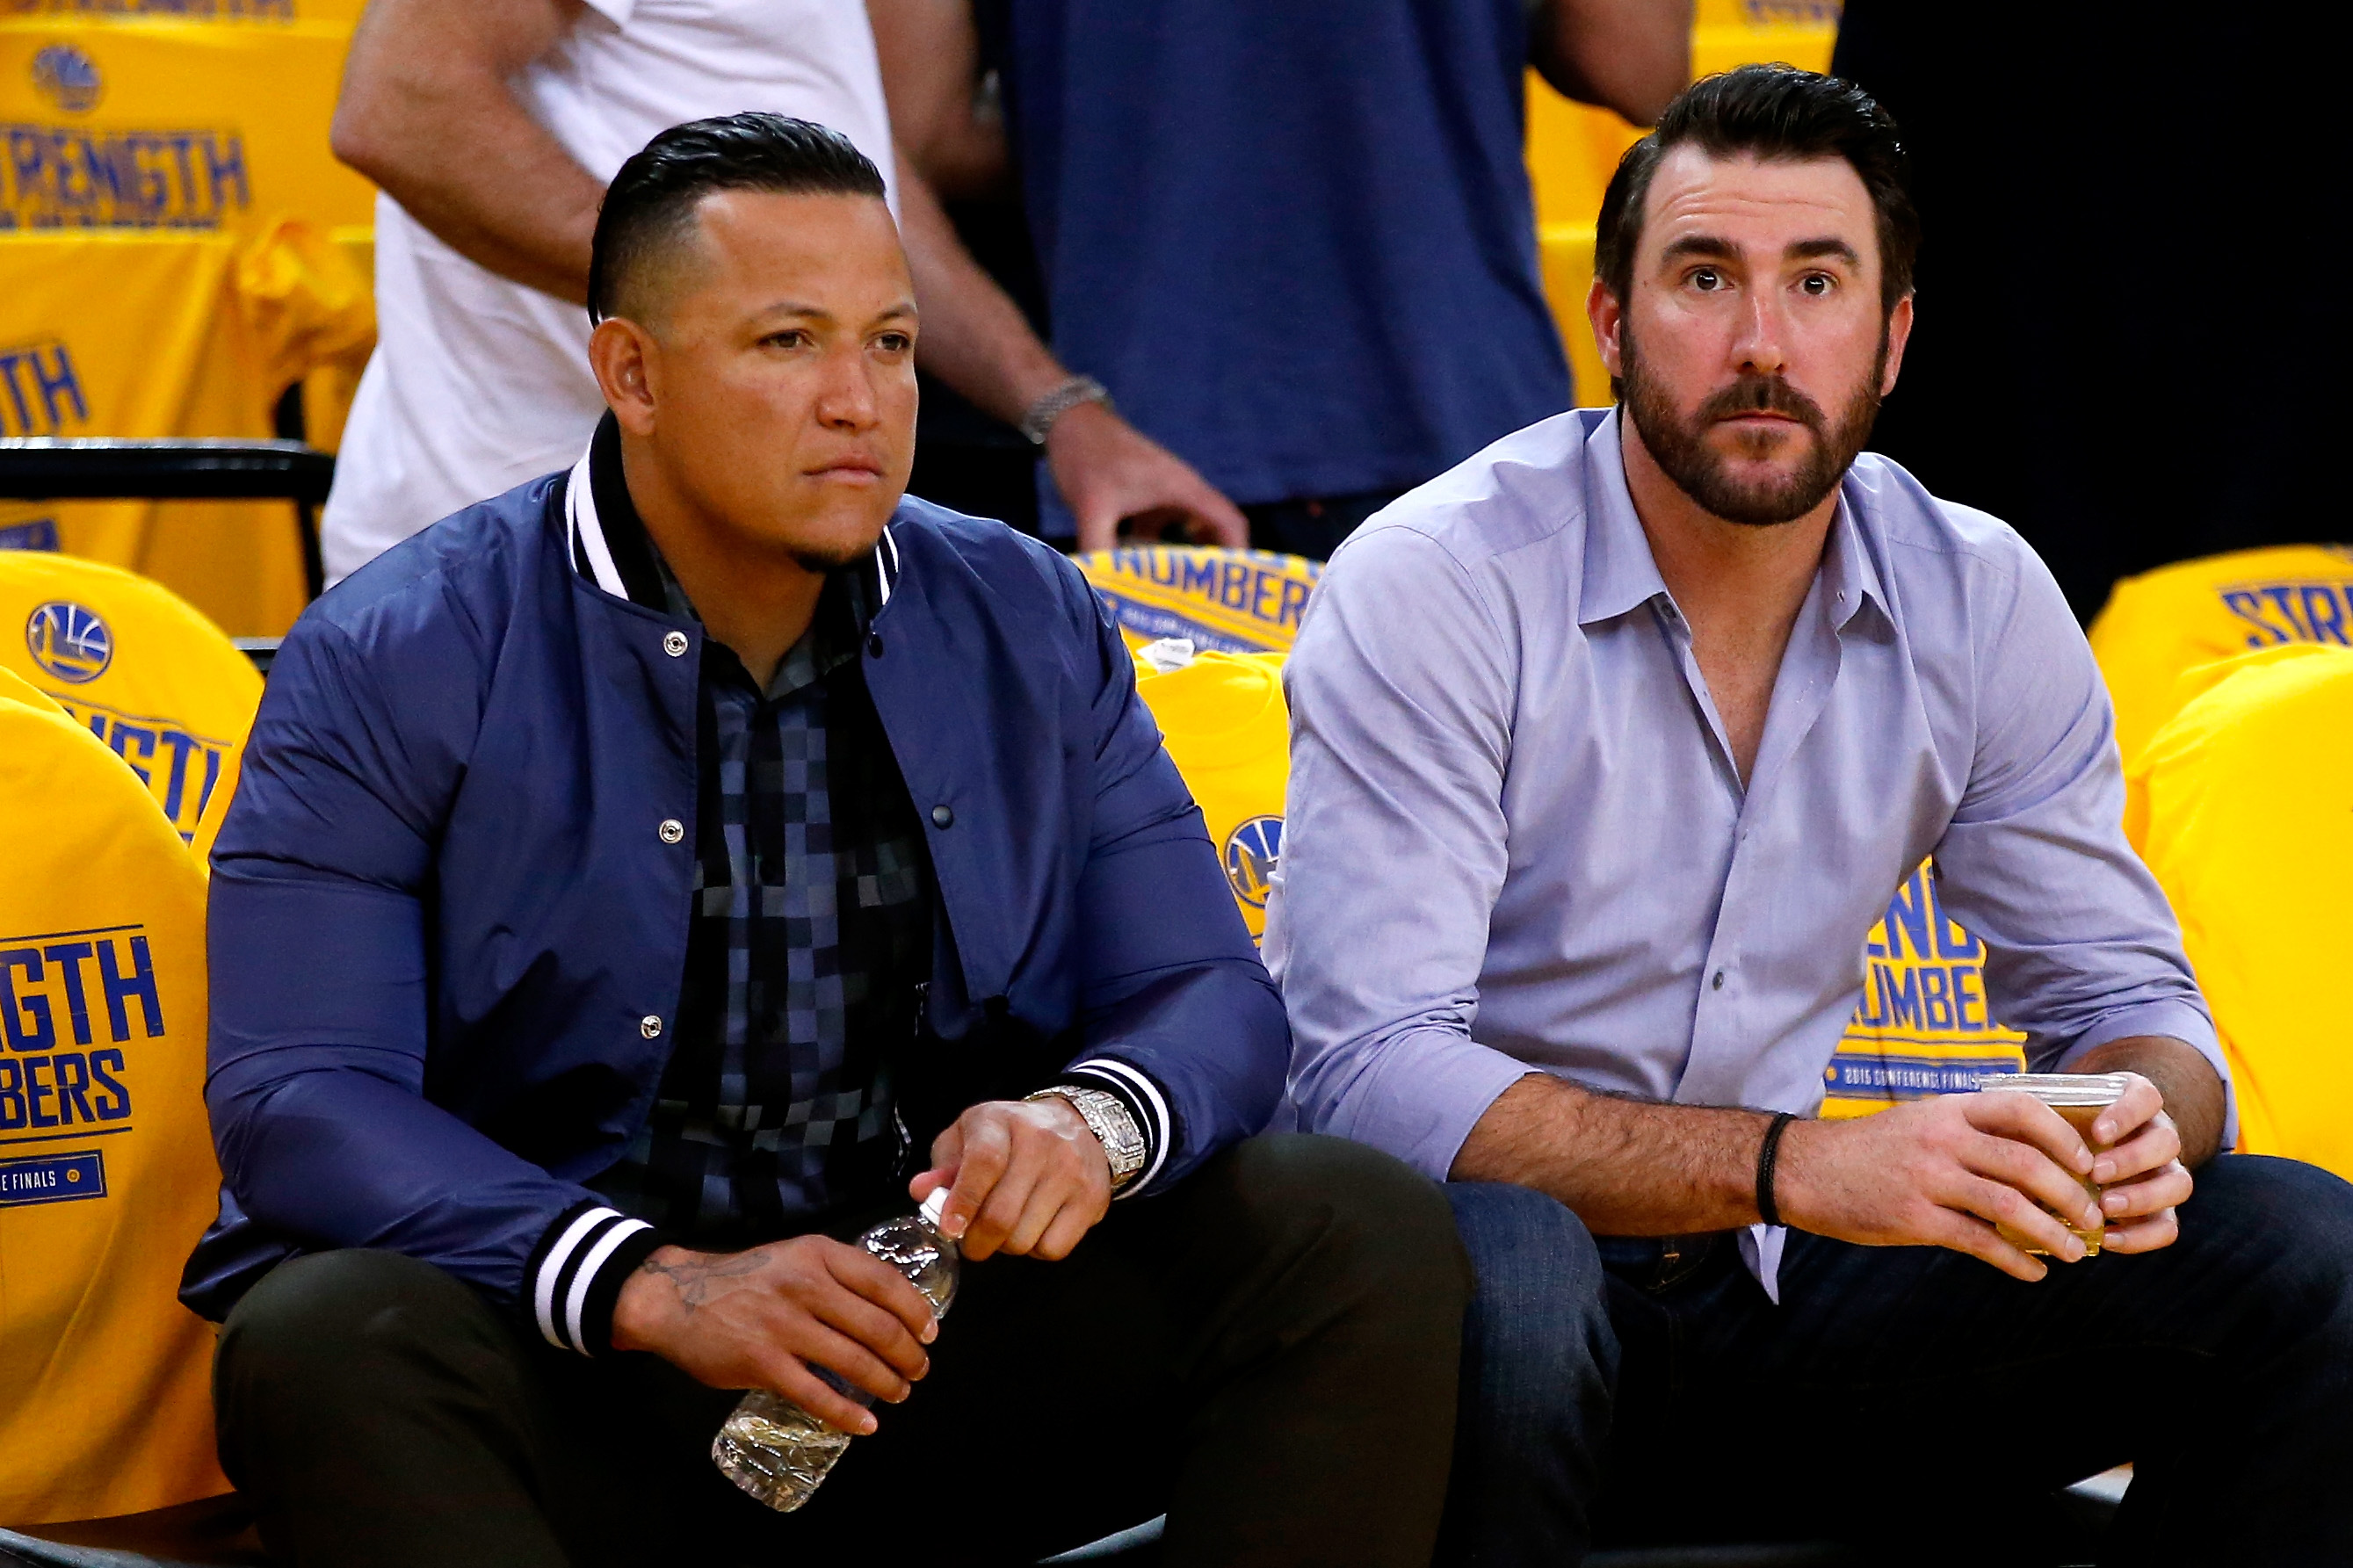 OAKLAND, CA - MAY 27:  (L-R) Miguel Cabrera and Justin Verlander of the Detroit Tigers watch warm ups before game five of the Western Conference Finals of the 2015 NBA Playoffs between the Houston Rockets and the Golden State Warriors at ORACLE Arena on M